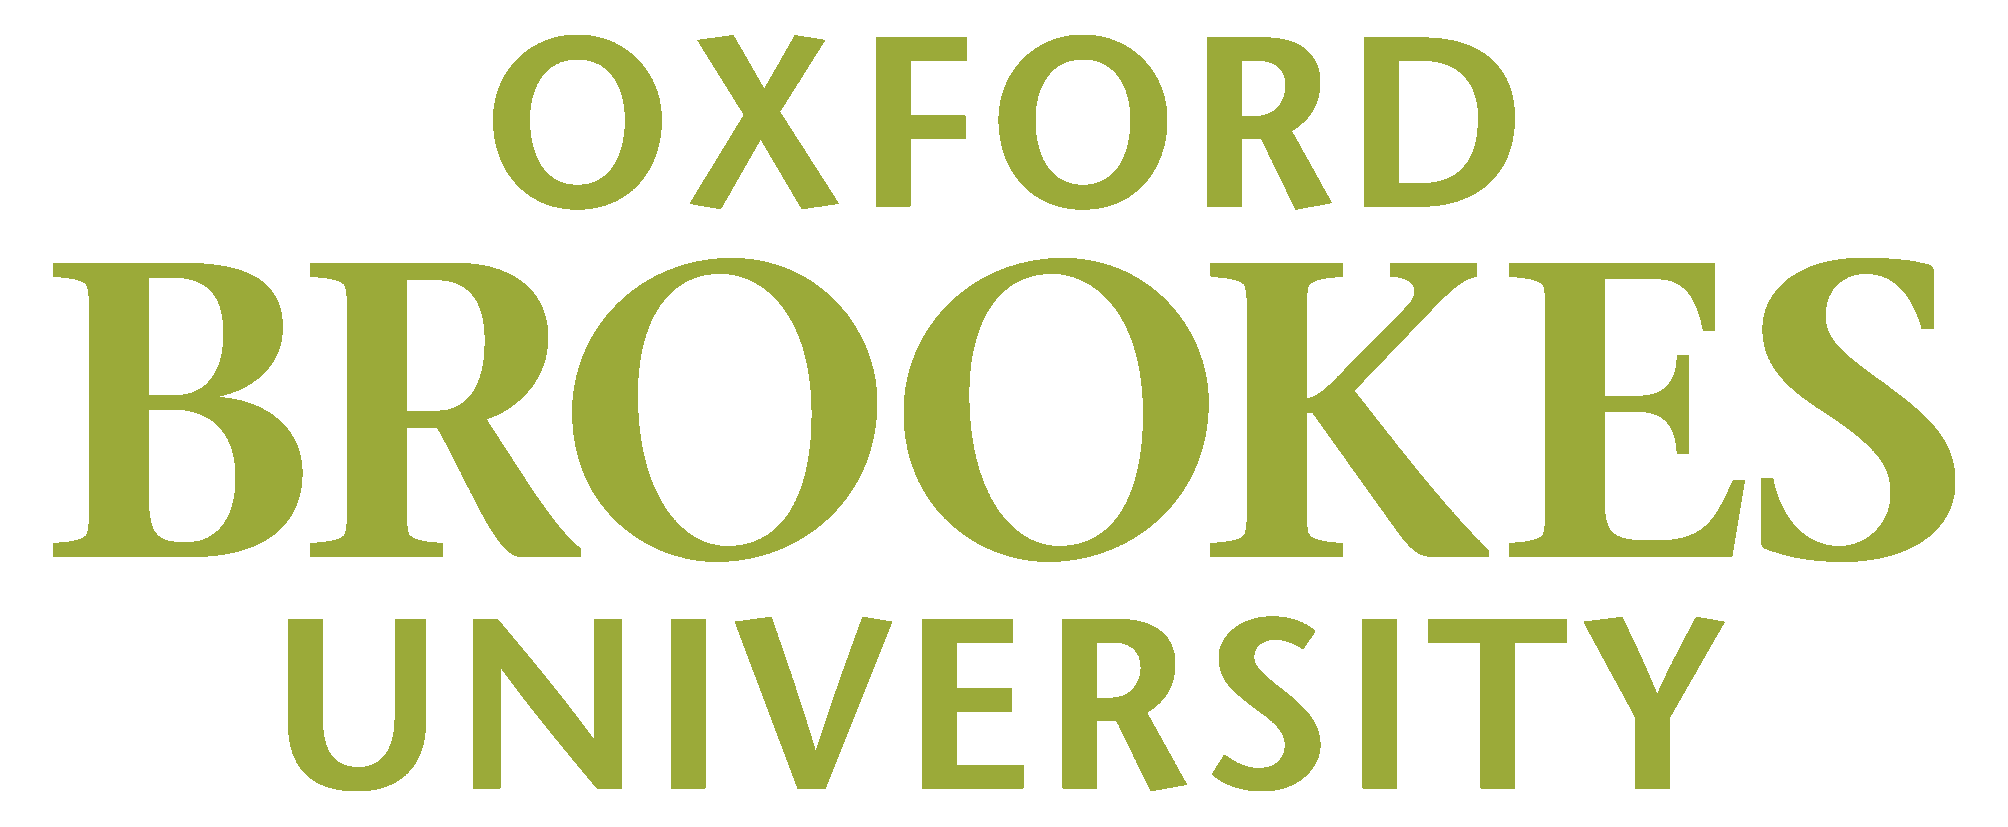 Oxford-brookes-logo-lime.png